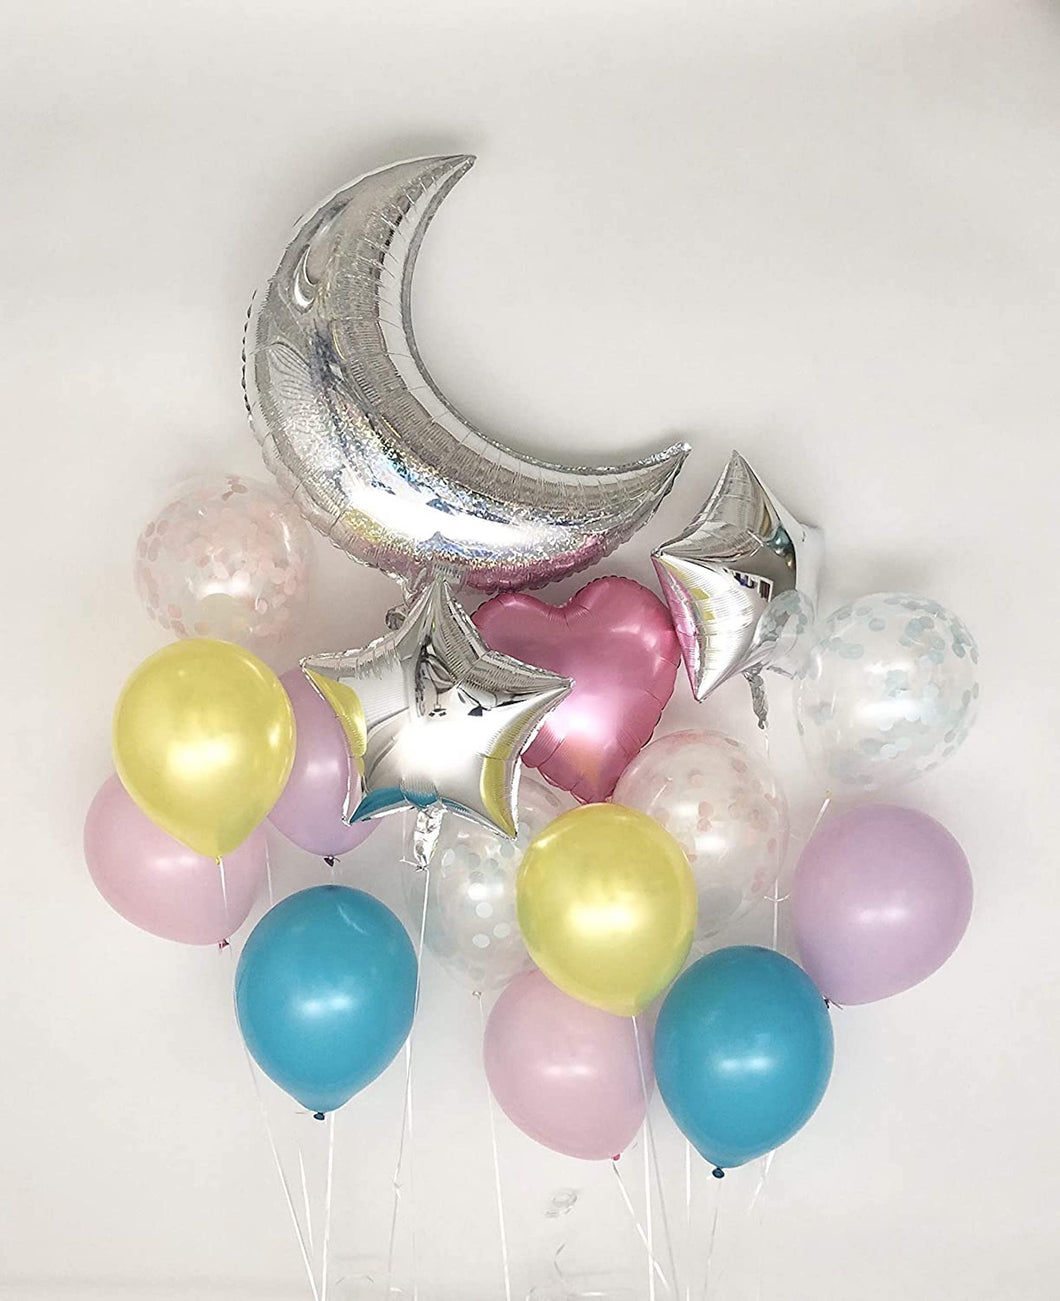 Sweet Moon 16 Piece Moon and Star Balloons Bouquet - Baby Shower, Gender Reveal, Bridal Shower, Eid, and Ramadan Decoration (Dream Set)